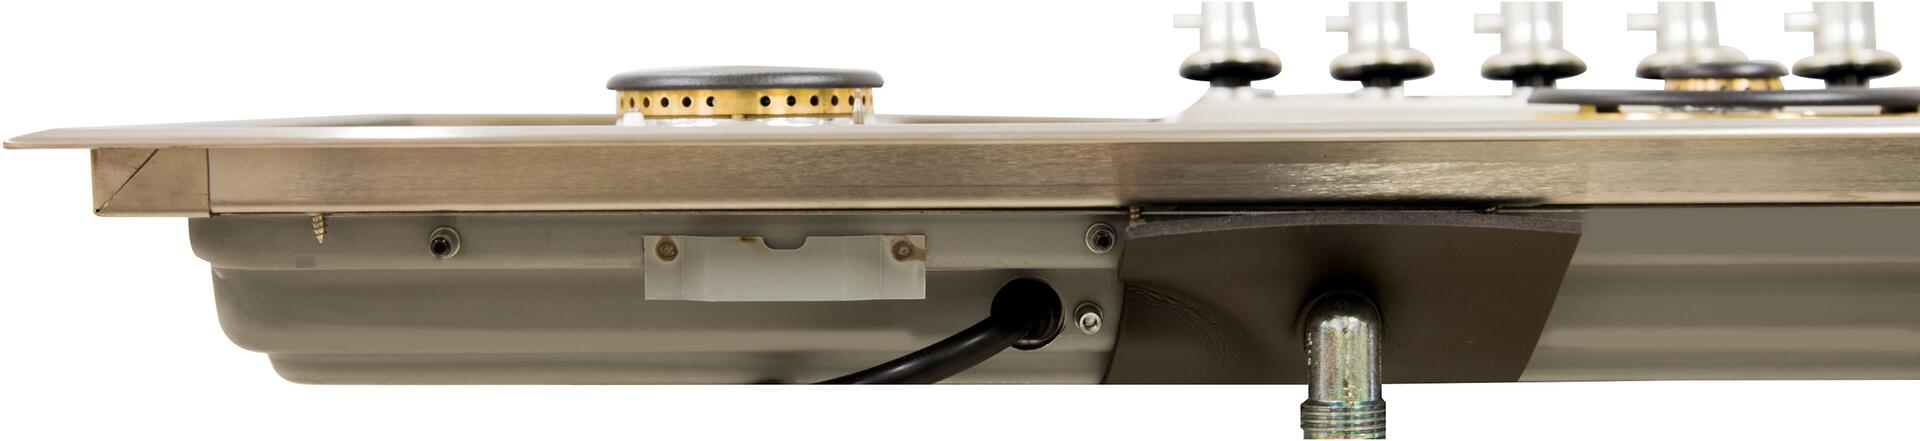 Ilve  UHP95CI Gas Cooktop Stainless Steel, Rear View Close Up